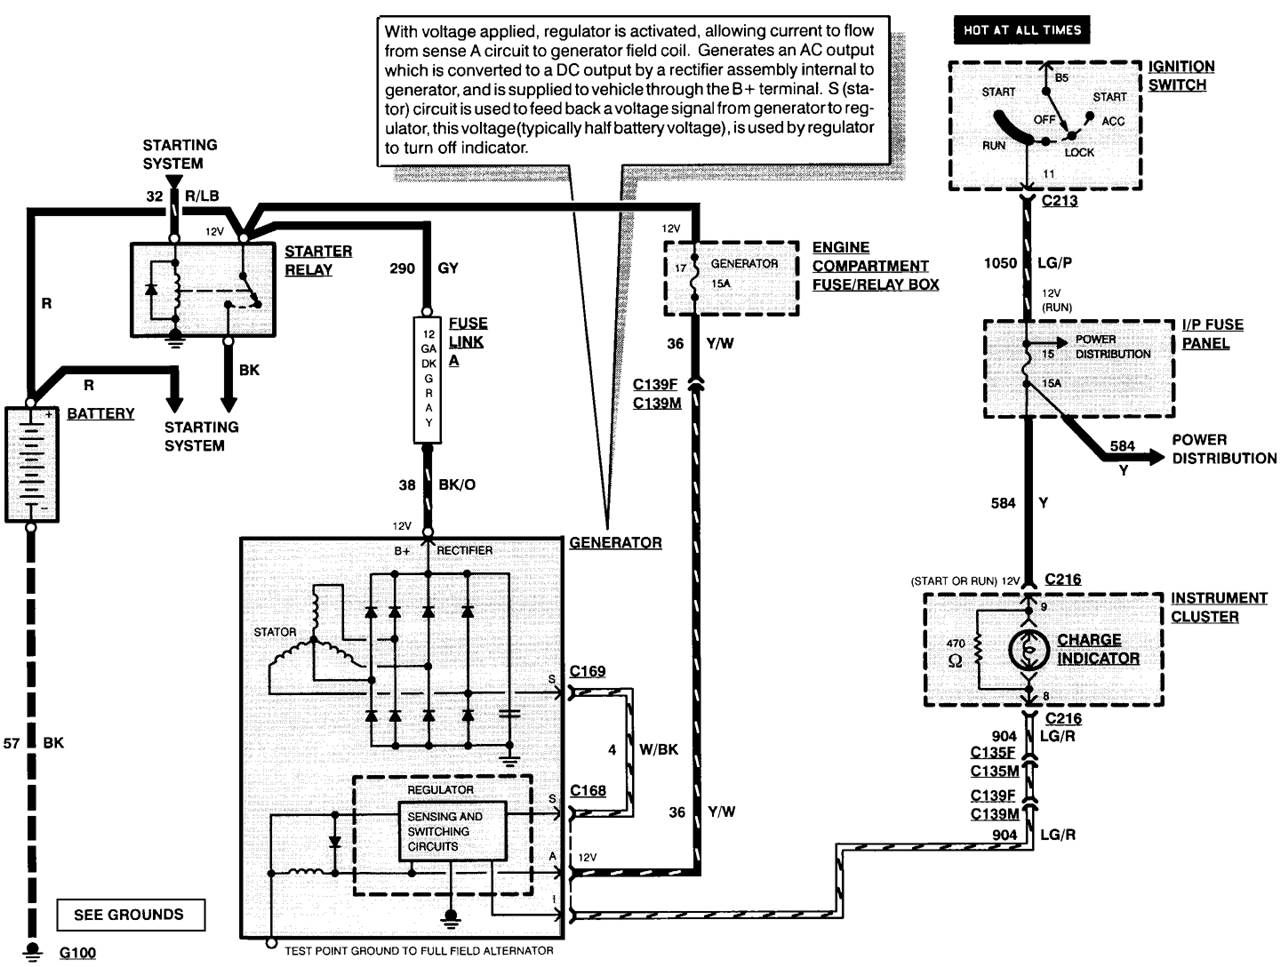 ford alternator wiring diagrams Dodge Dakota Wiring-Diagram Internal Regulator Alternator